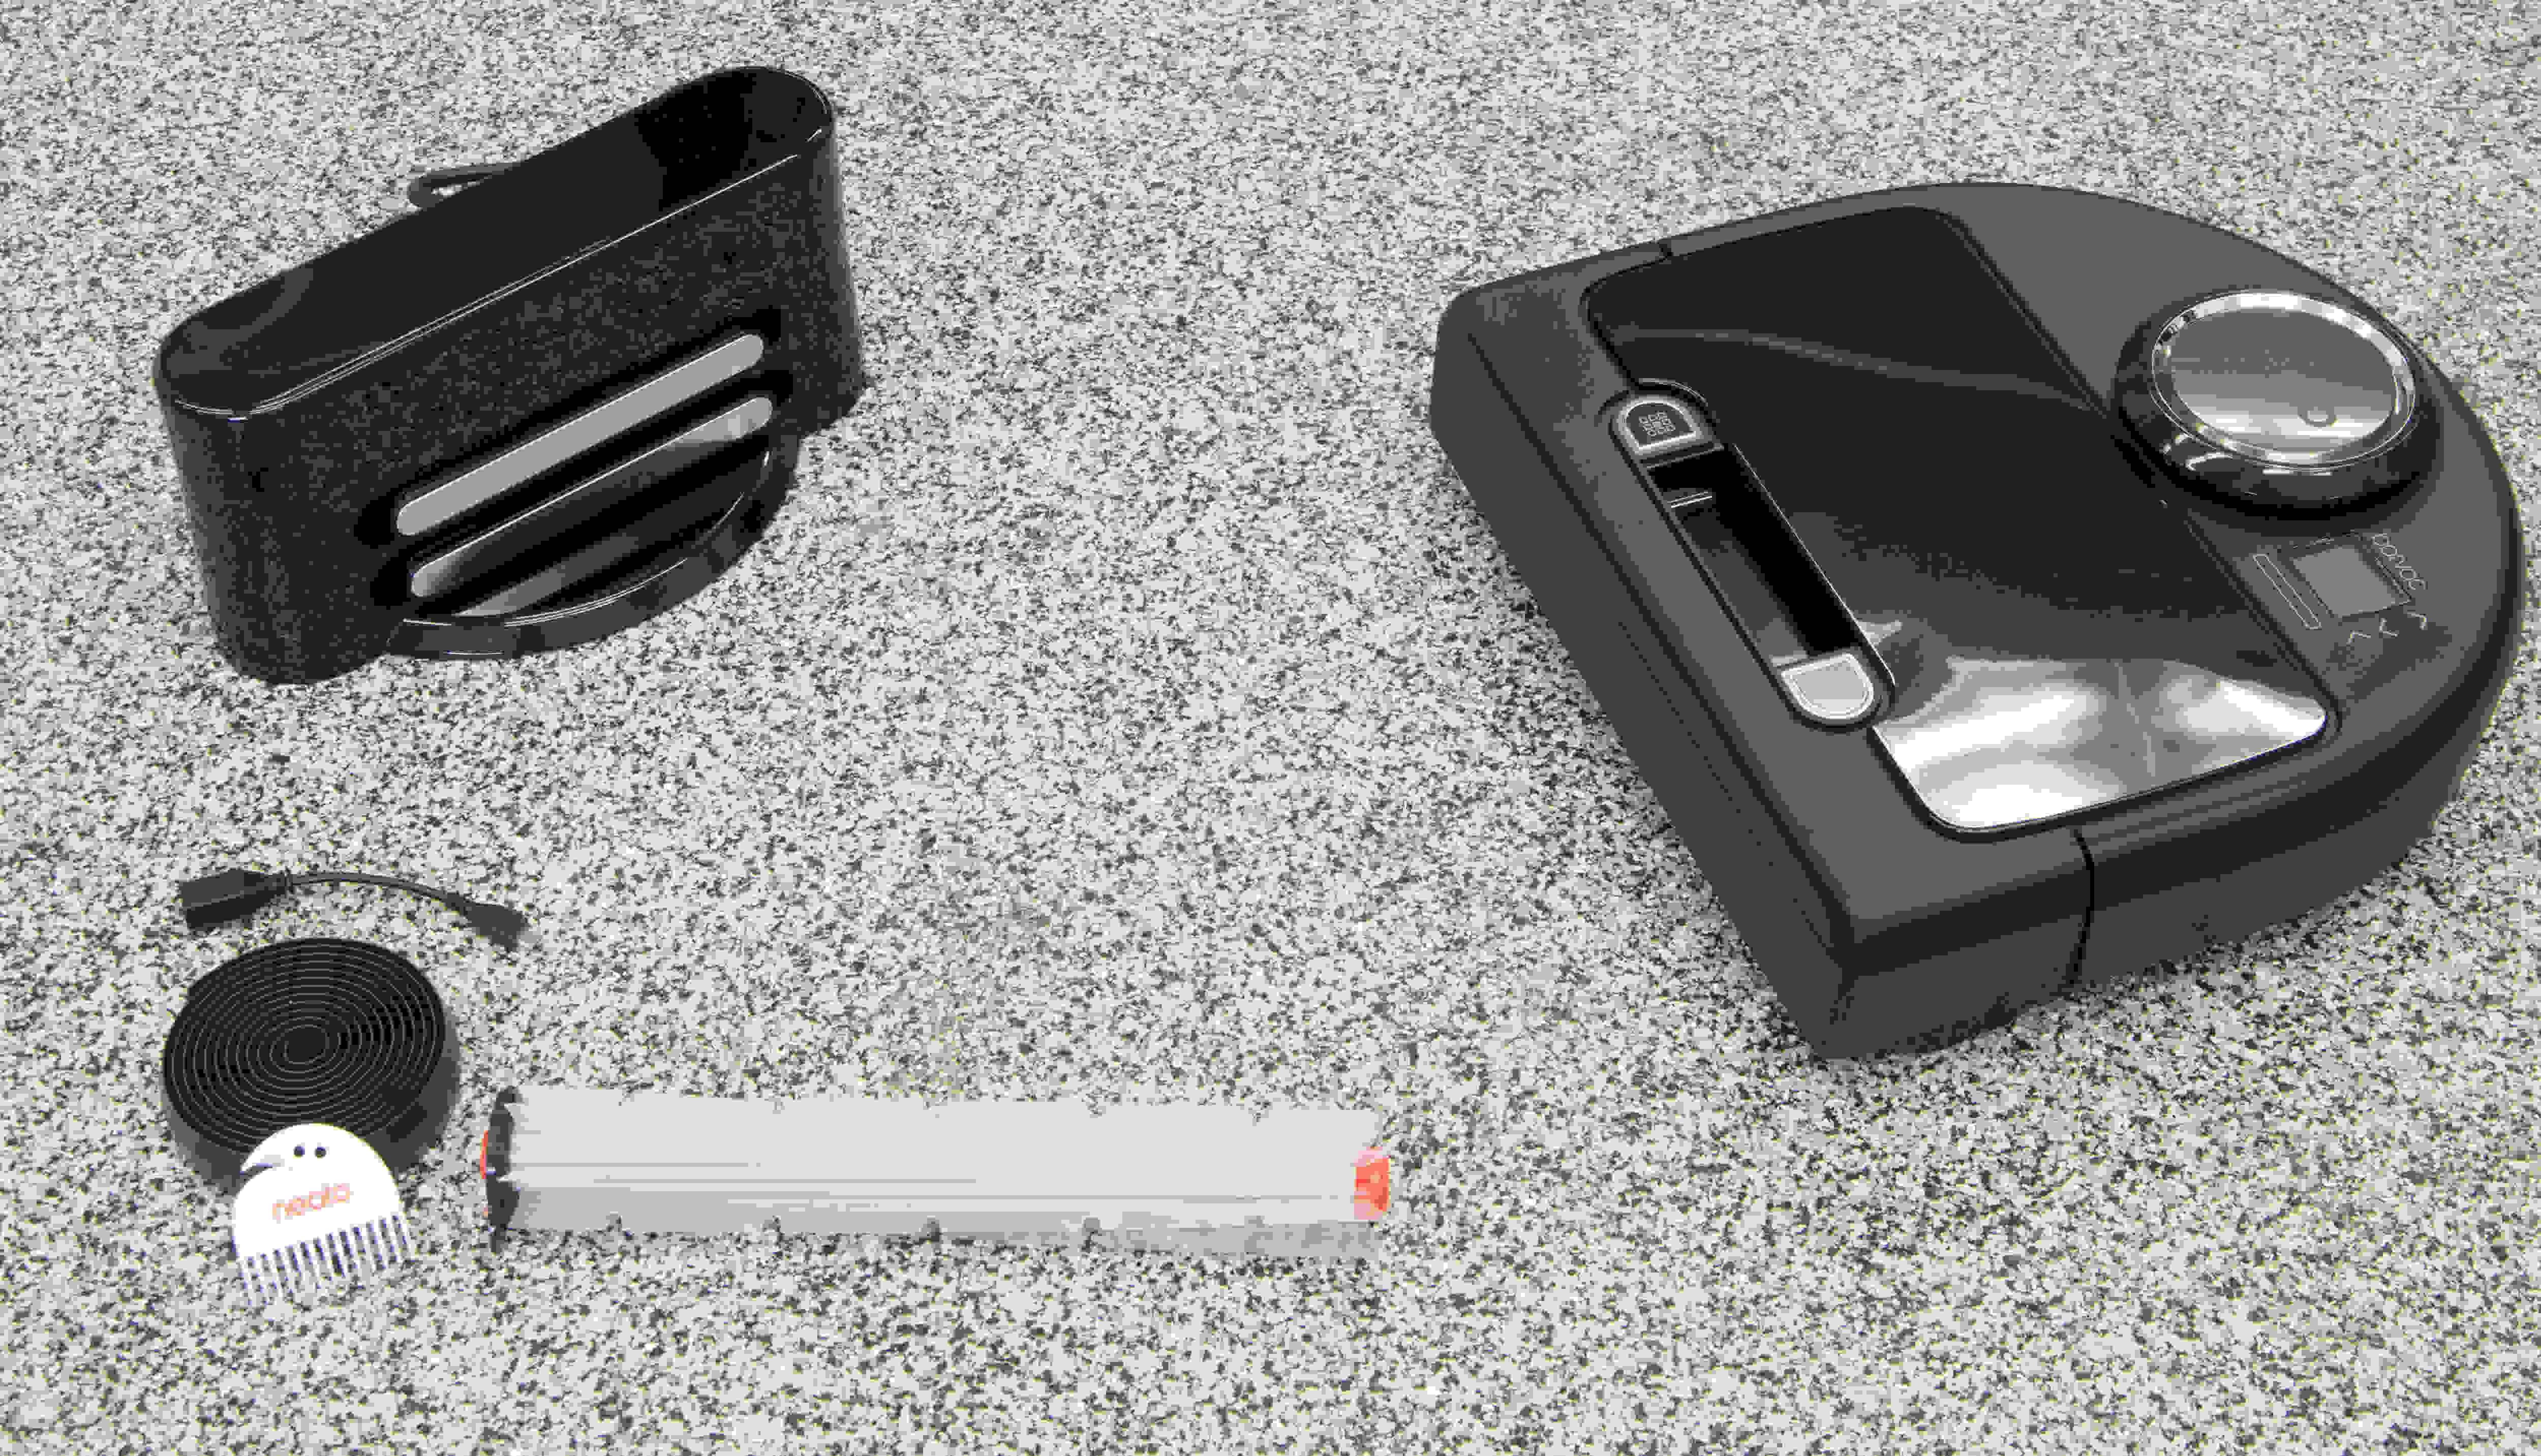 The Neato comes with a brush cleaner, a magnetic strip, a charger, and a USB cable.